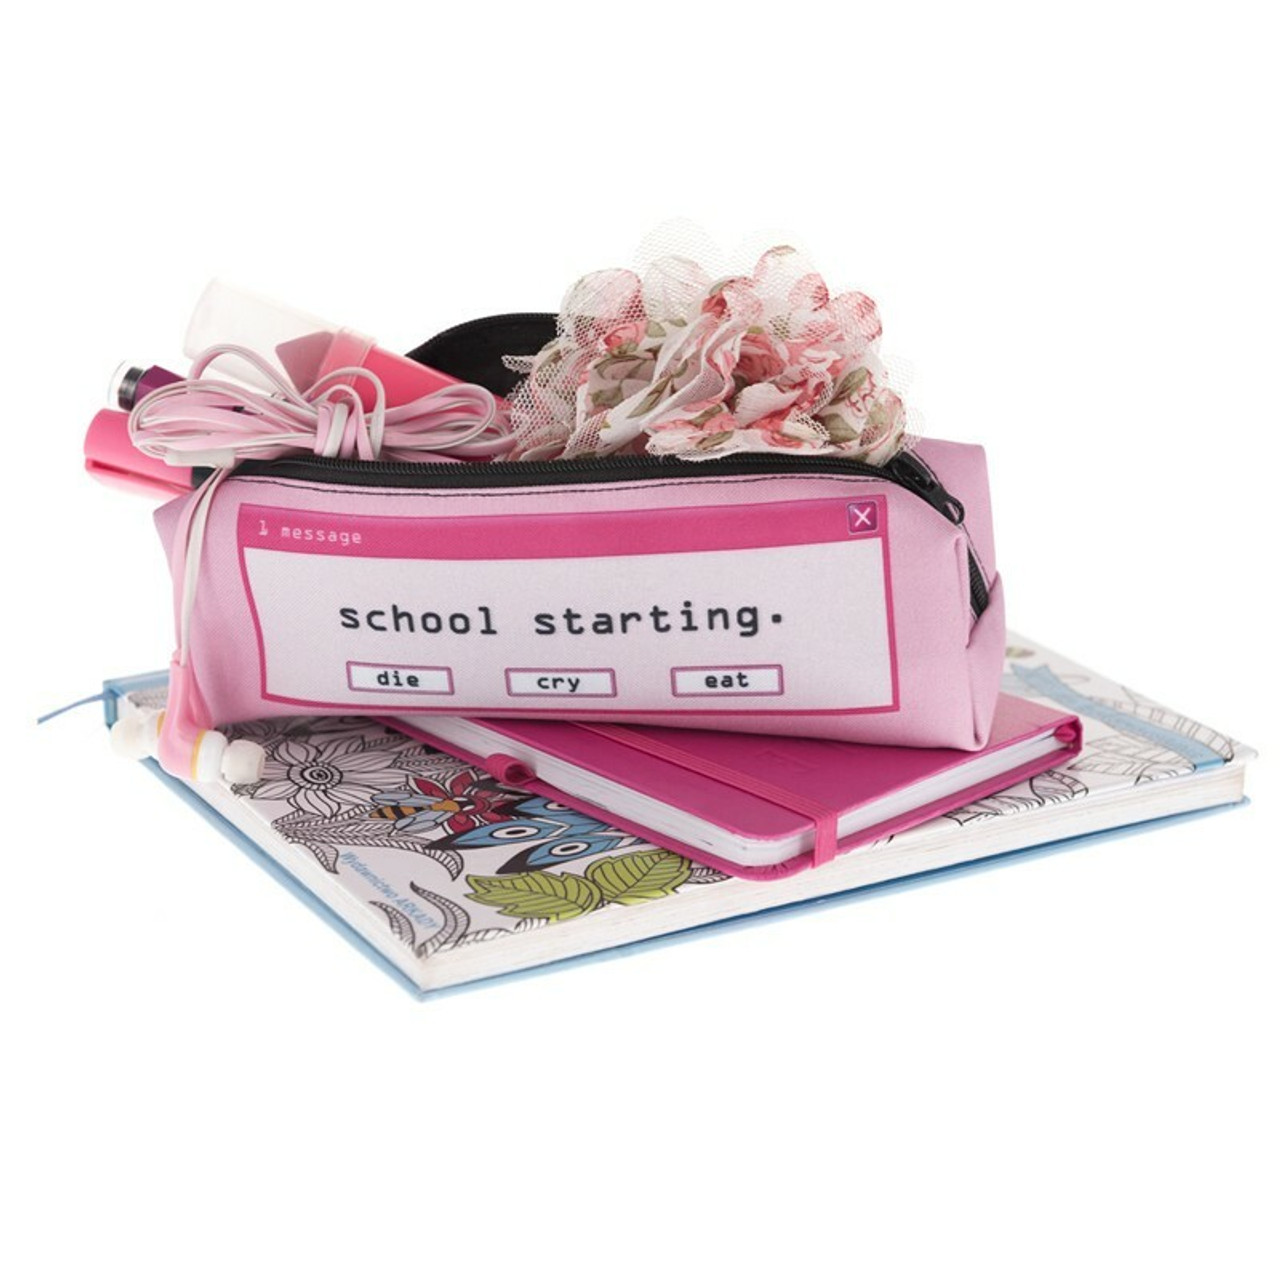 Open School Starting Sassy Text Rectangular Graphic Print Cosmetics Case - 18 Styles atop diary style books with small ites sticking out